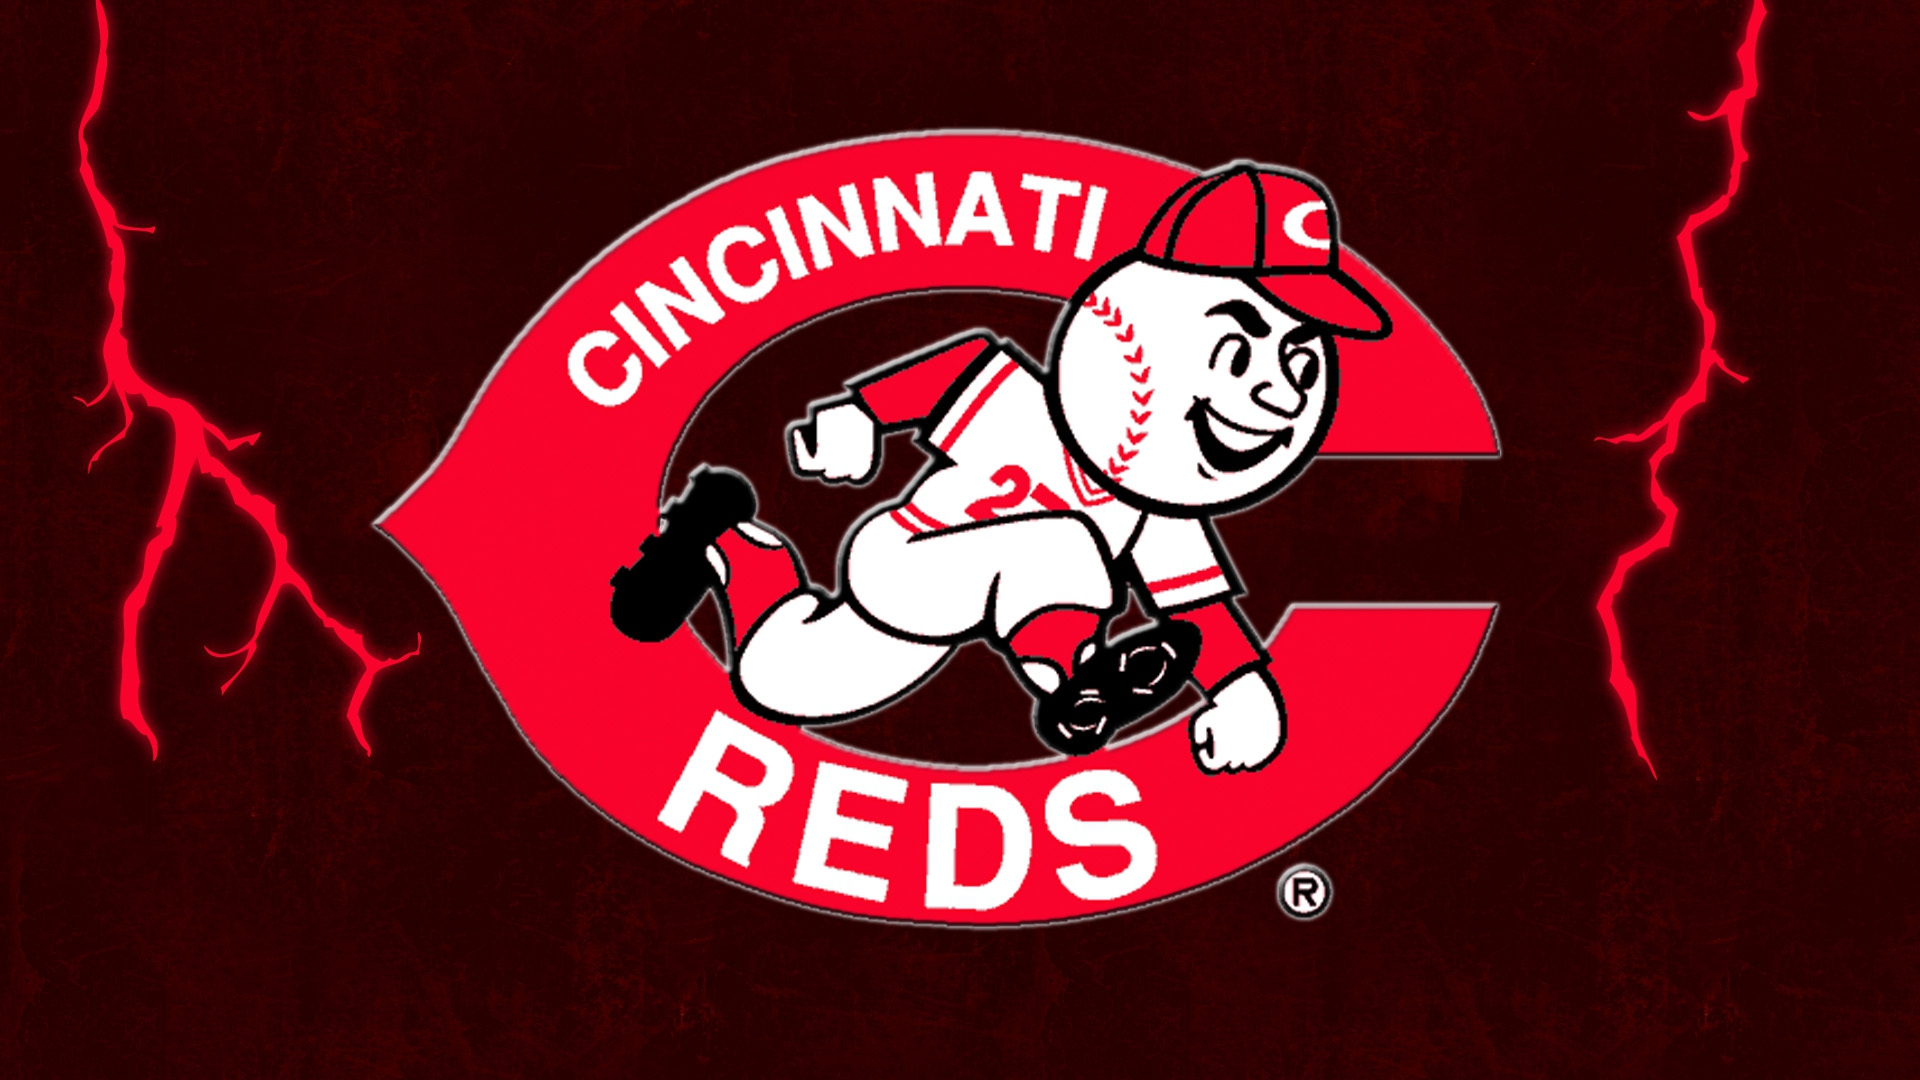 Cincinnati Reds Wallpapers Images Photos Pictures Backgrounds 1920x1080